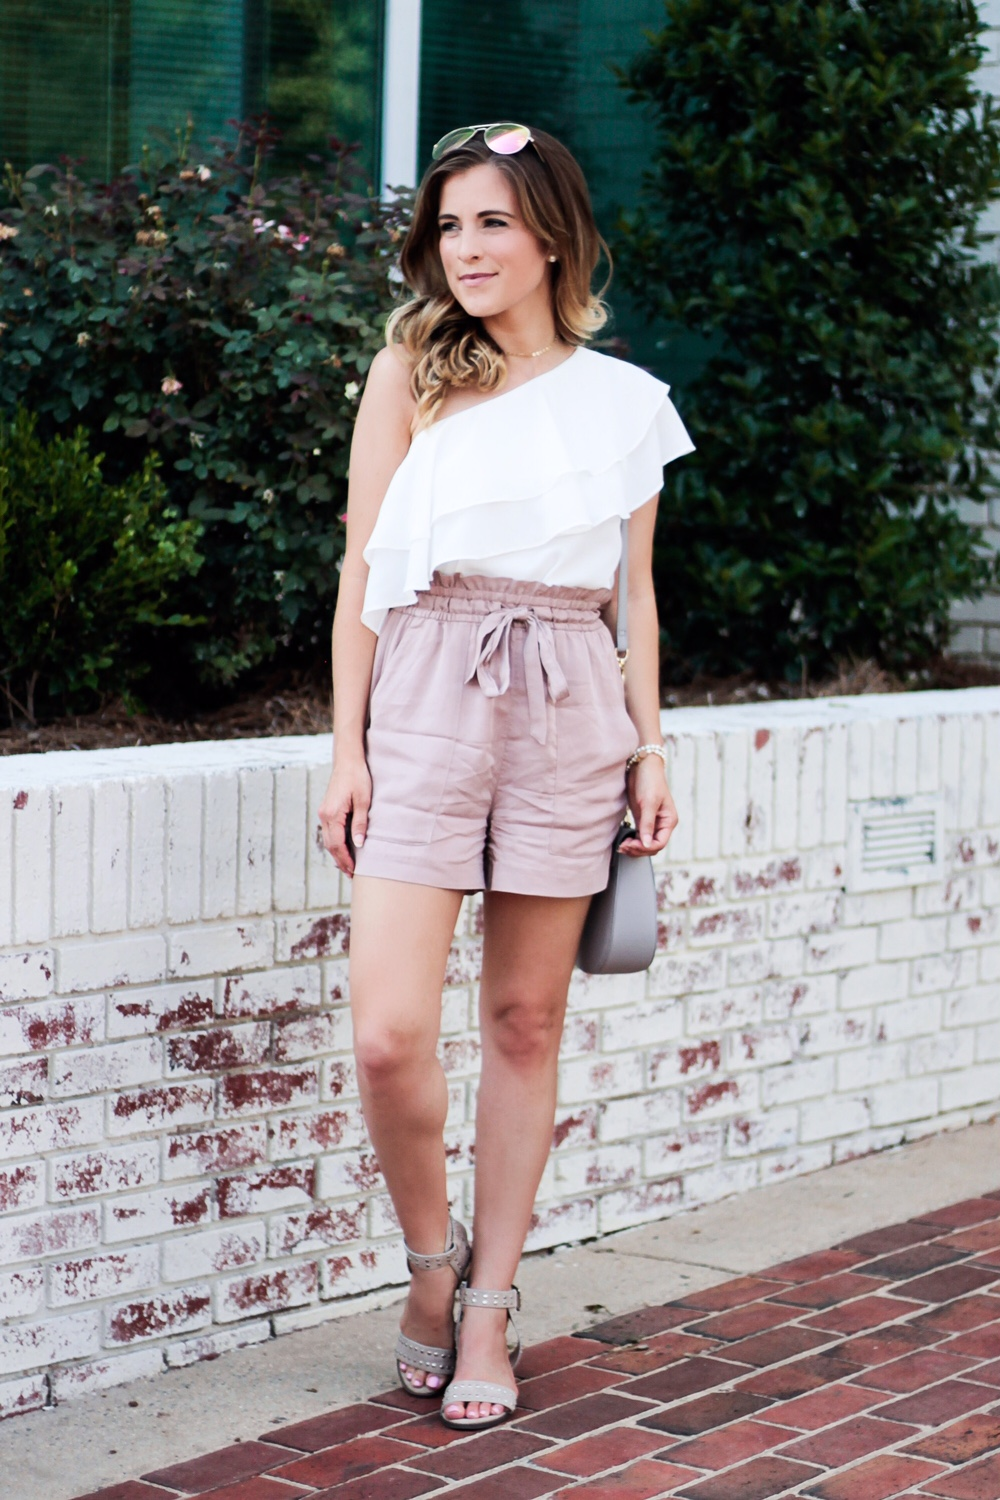 Clothing, Shoes & Accessories H&m White Shorts